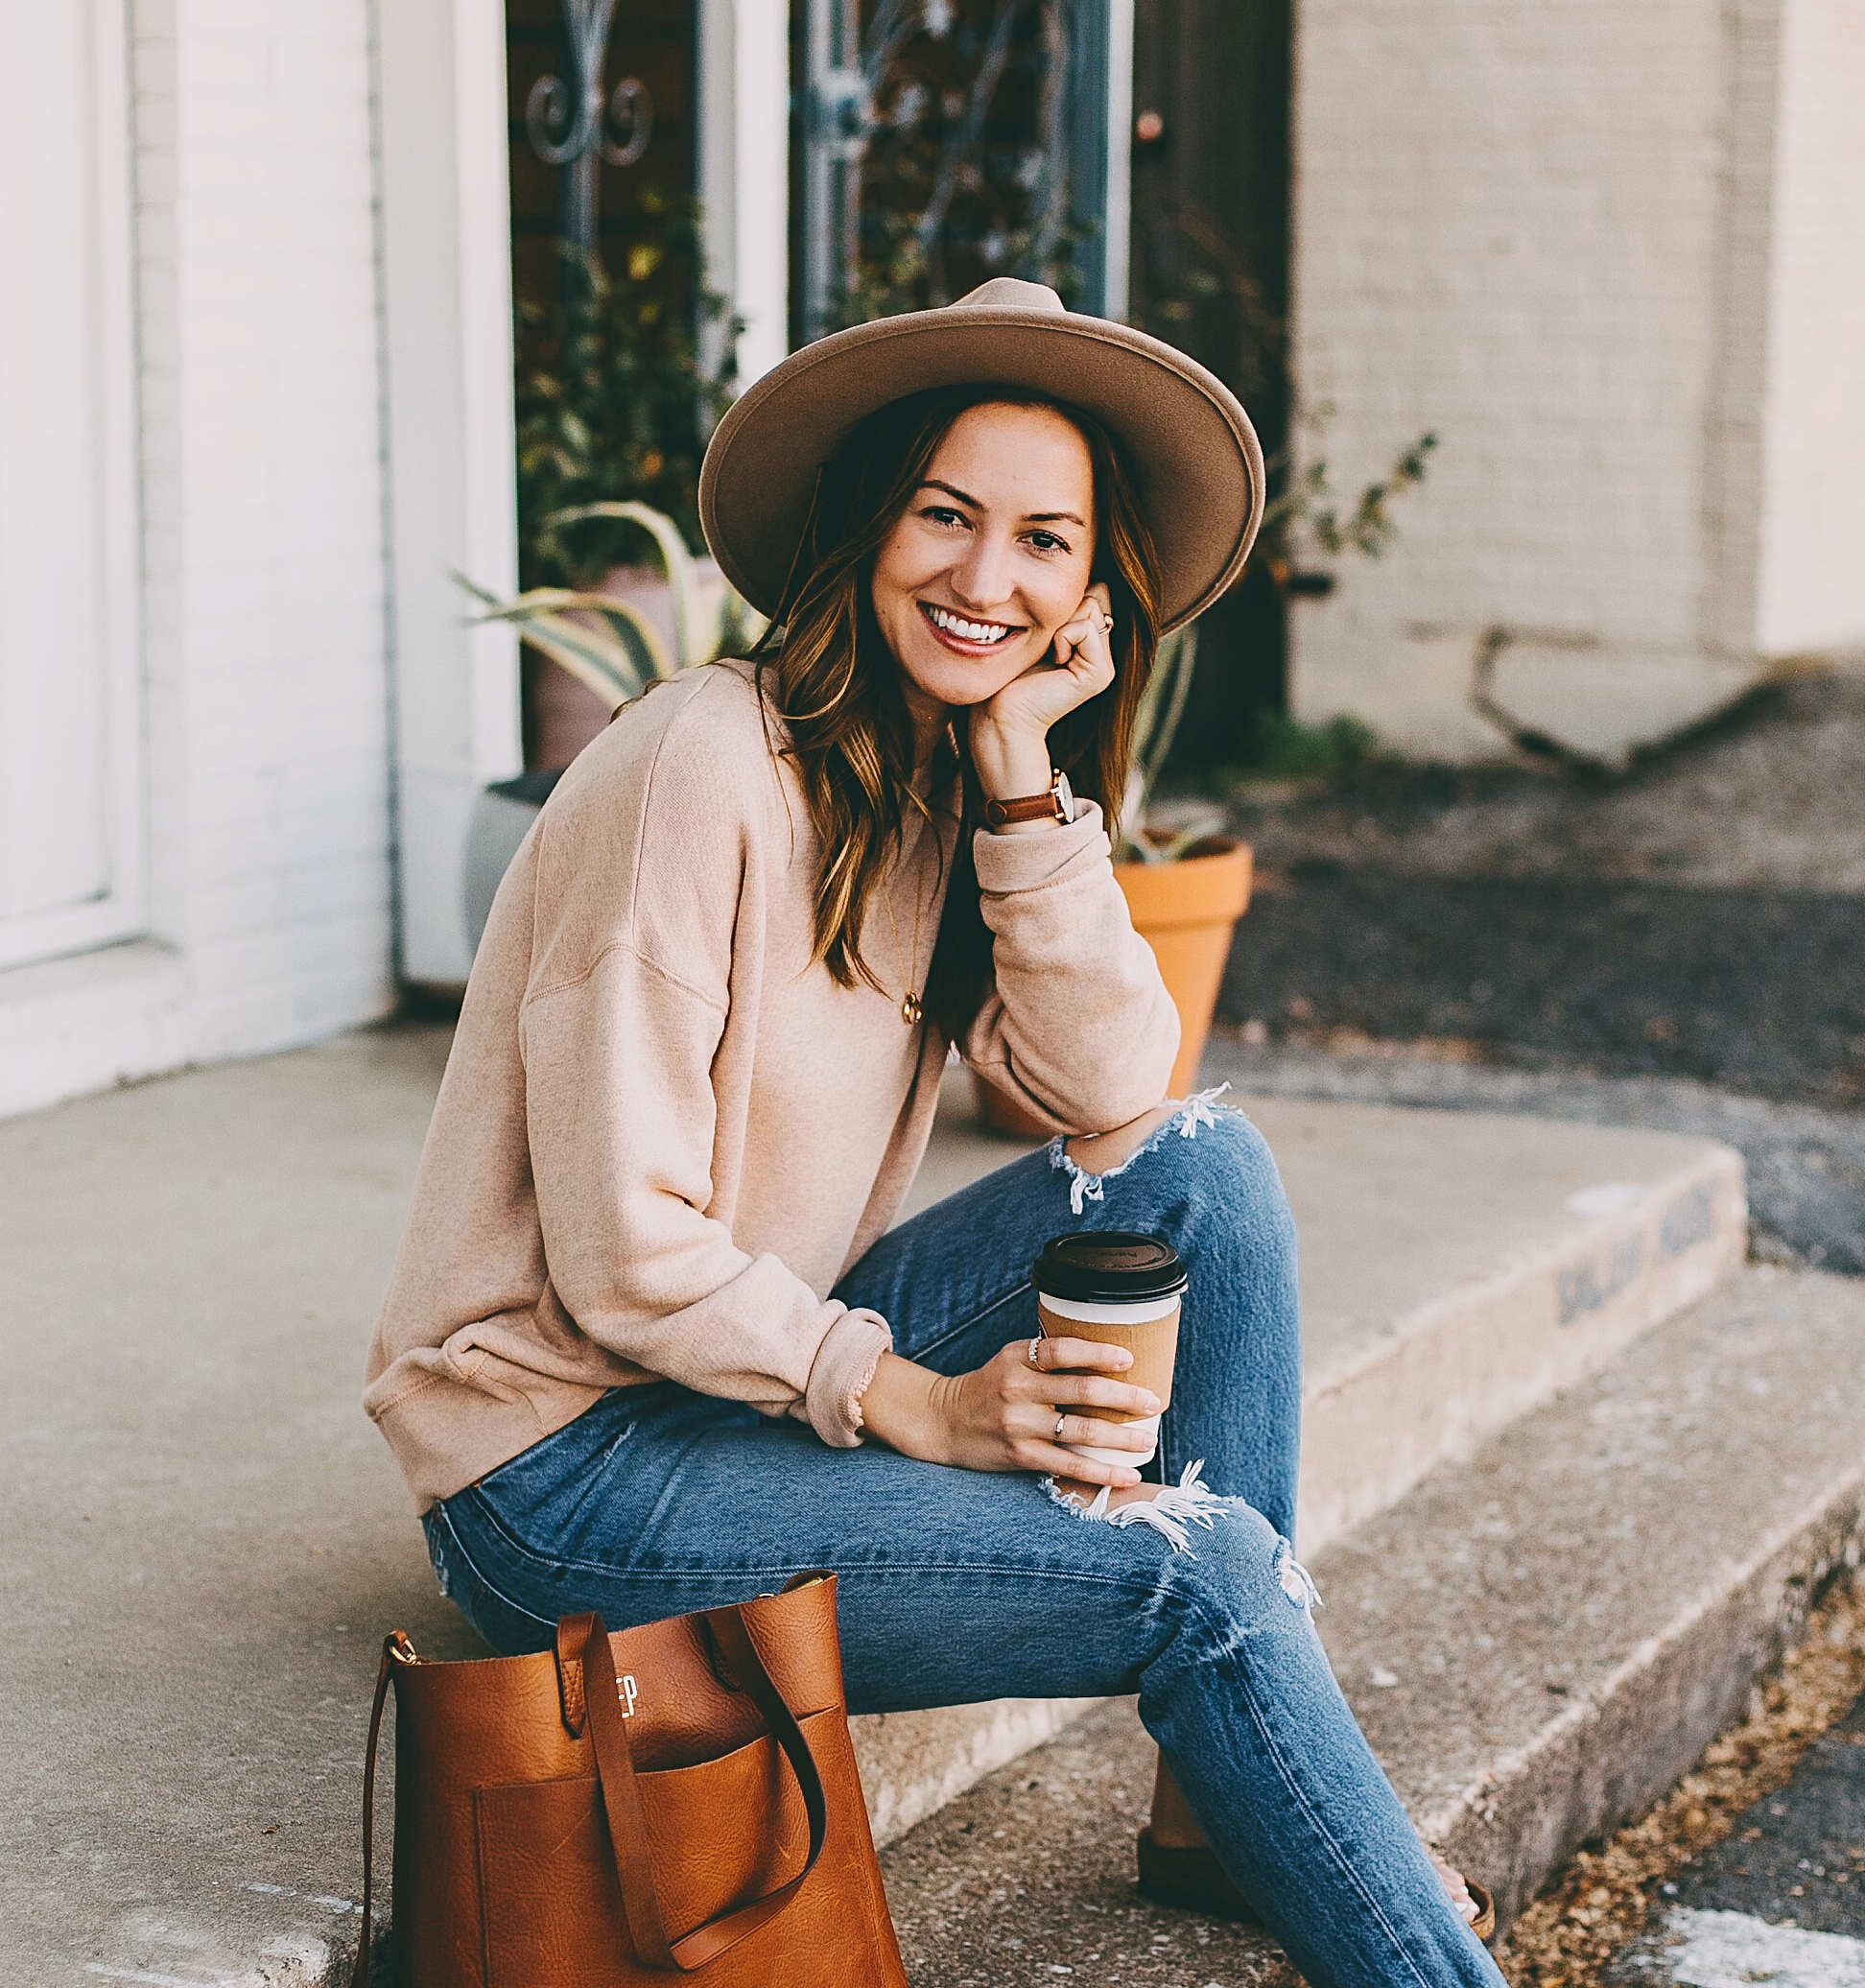 Nordstrom Anniversary Sale Instagram Roundup! - LivvyLand | Austin Fashion and Style Blogger